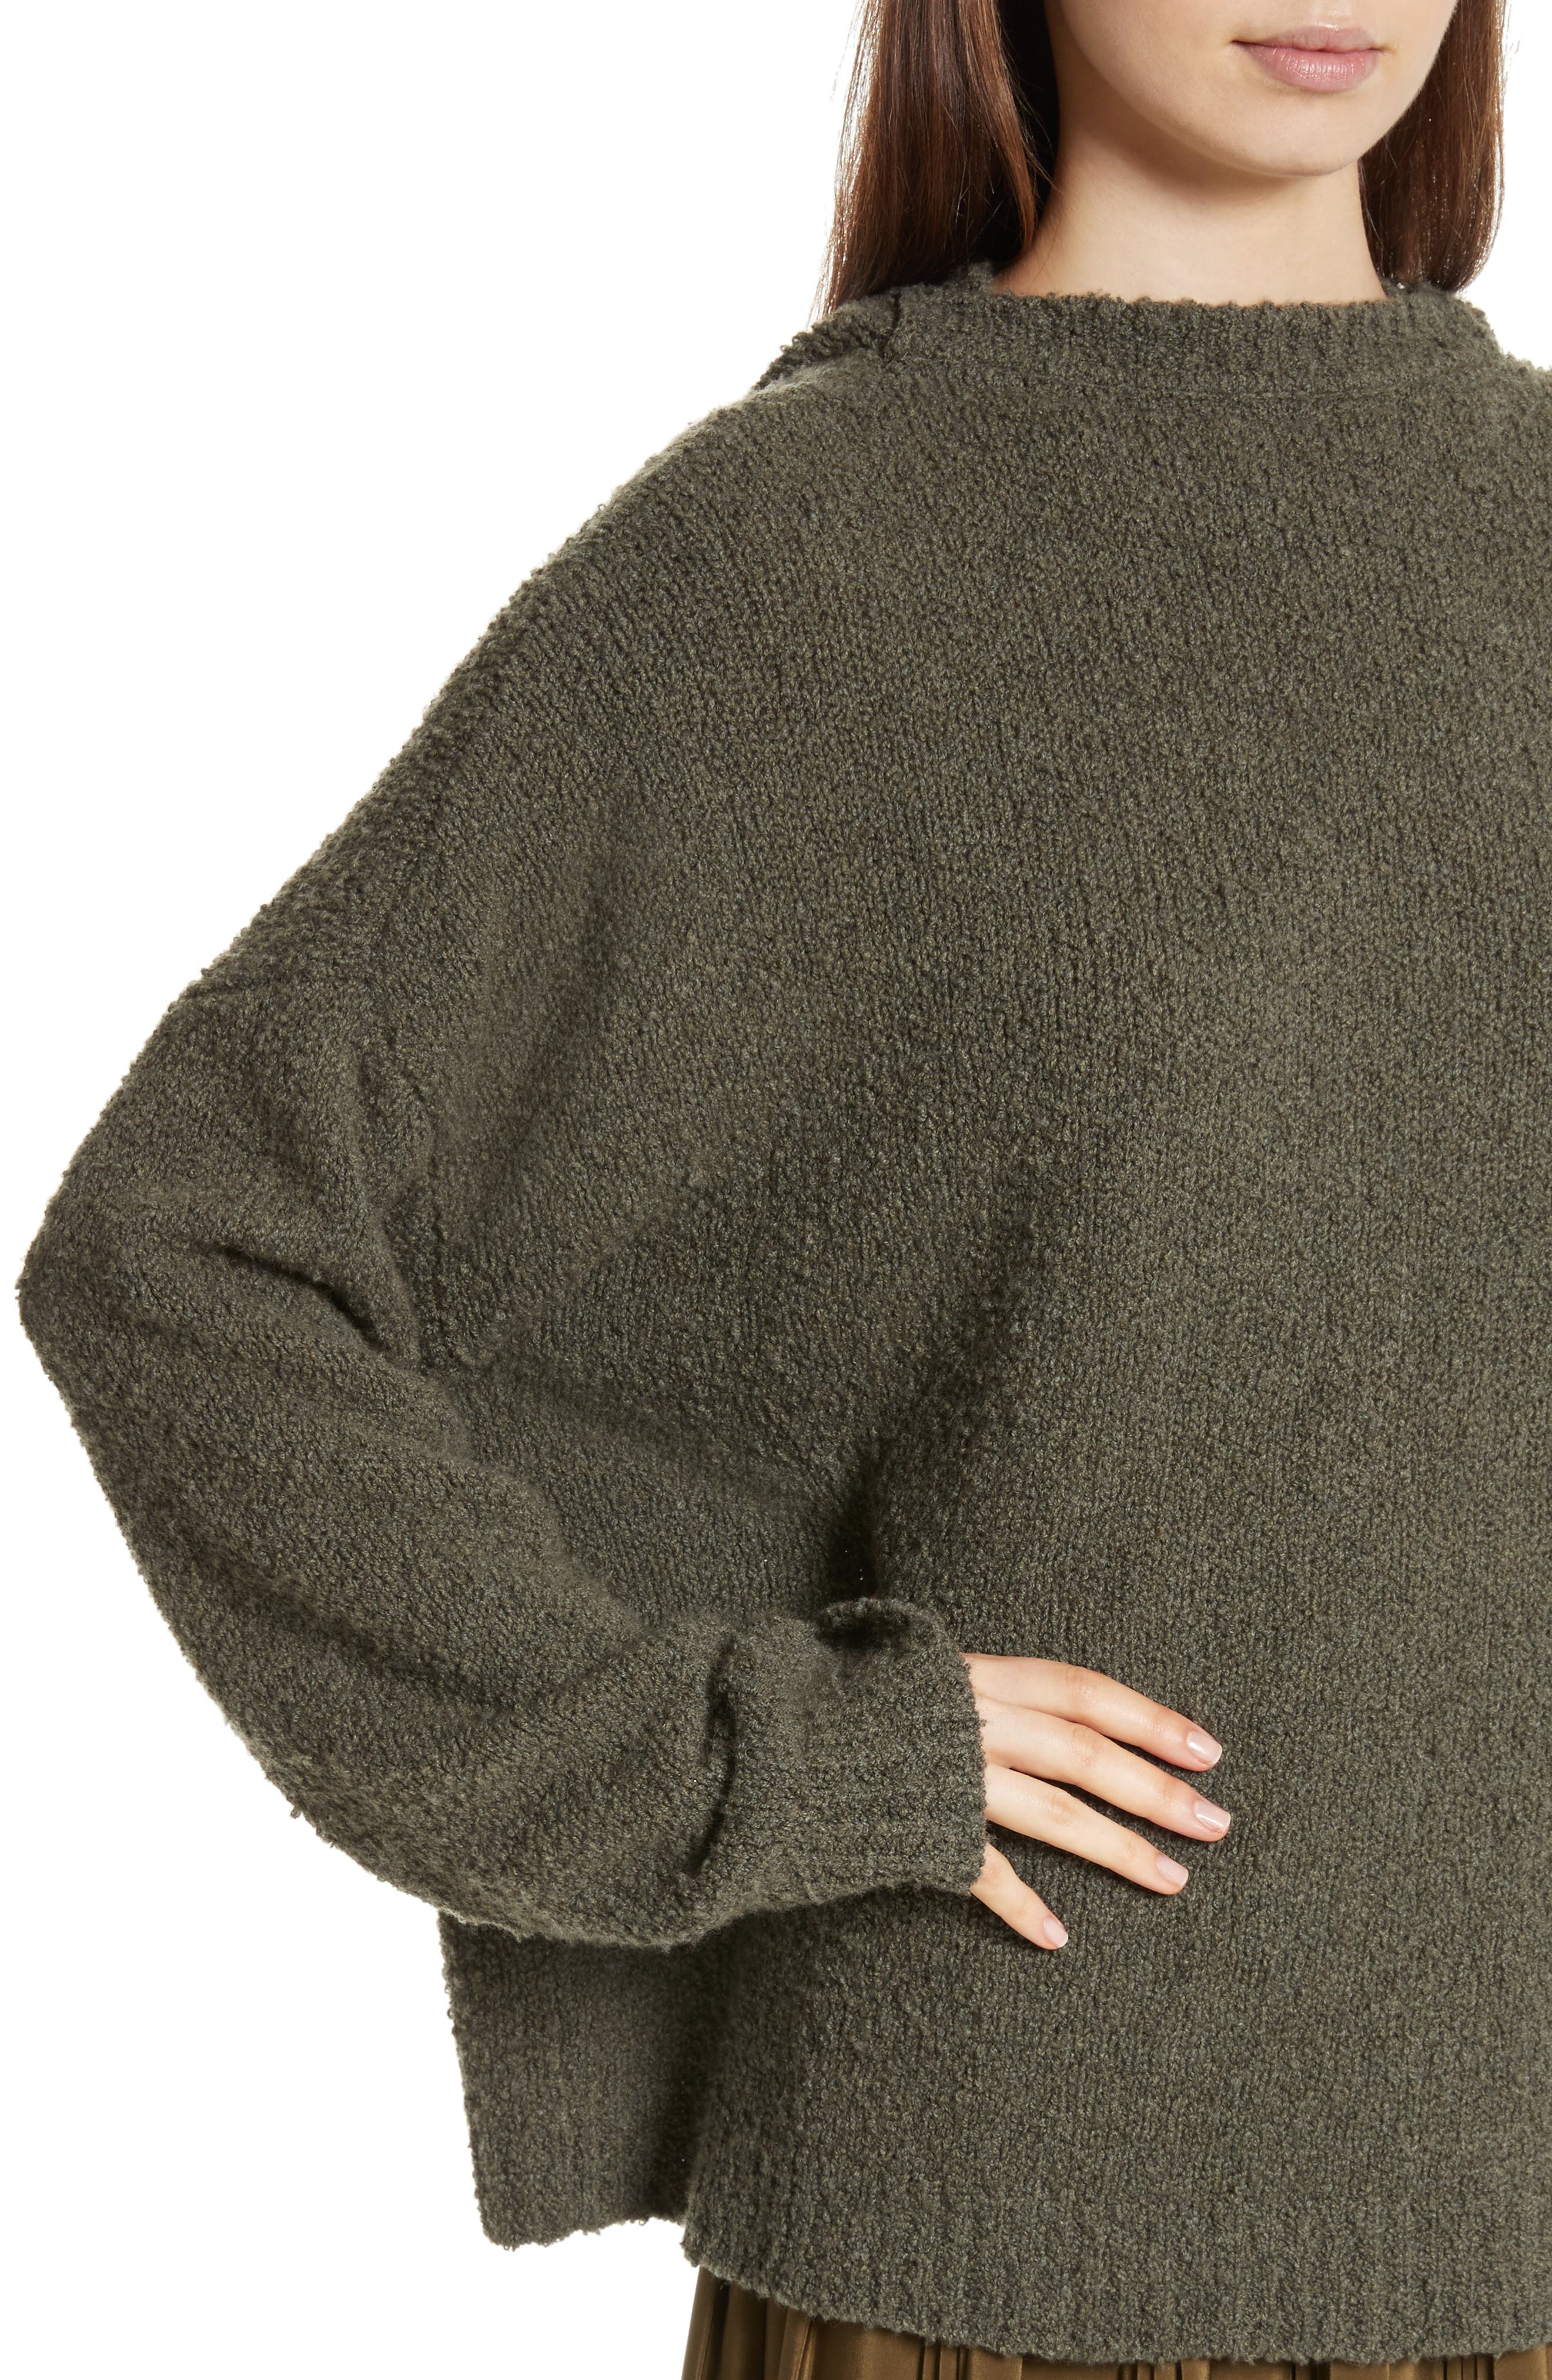 Merino Wool & Cashmere Reversible Hooded Sweater,                             Alternate thumbnail 2, color,                             300